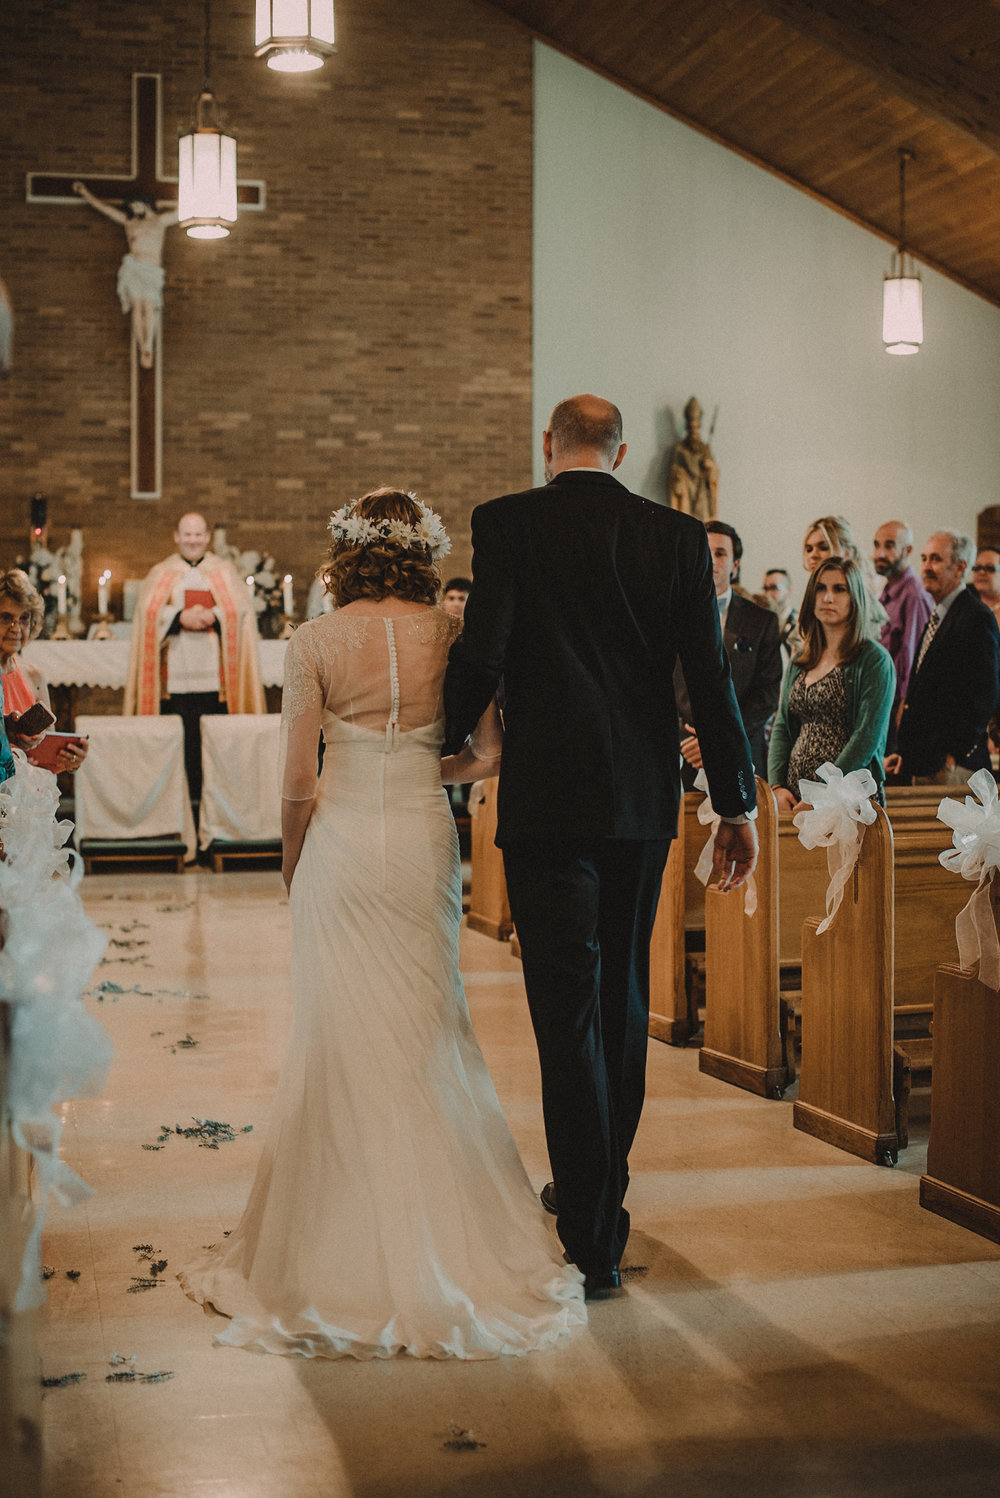 Bride walking down aisle in church